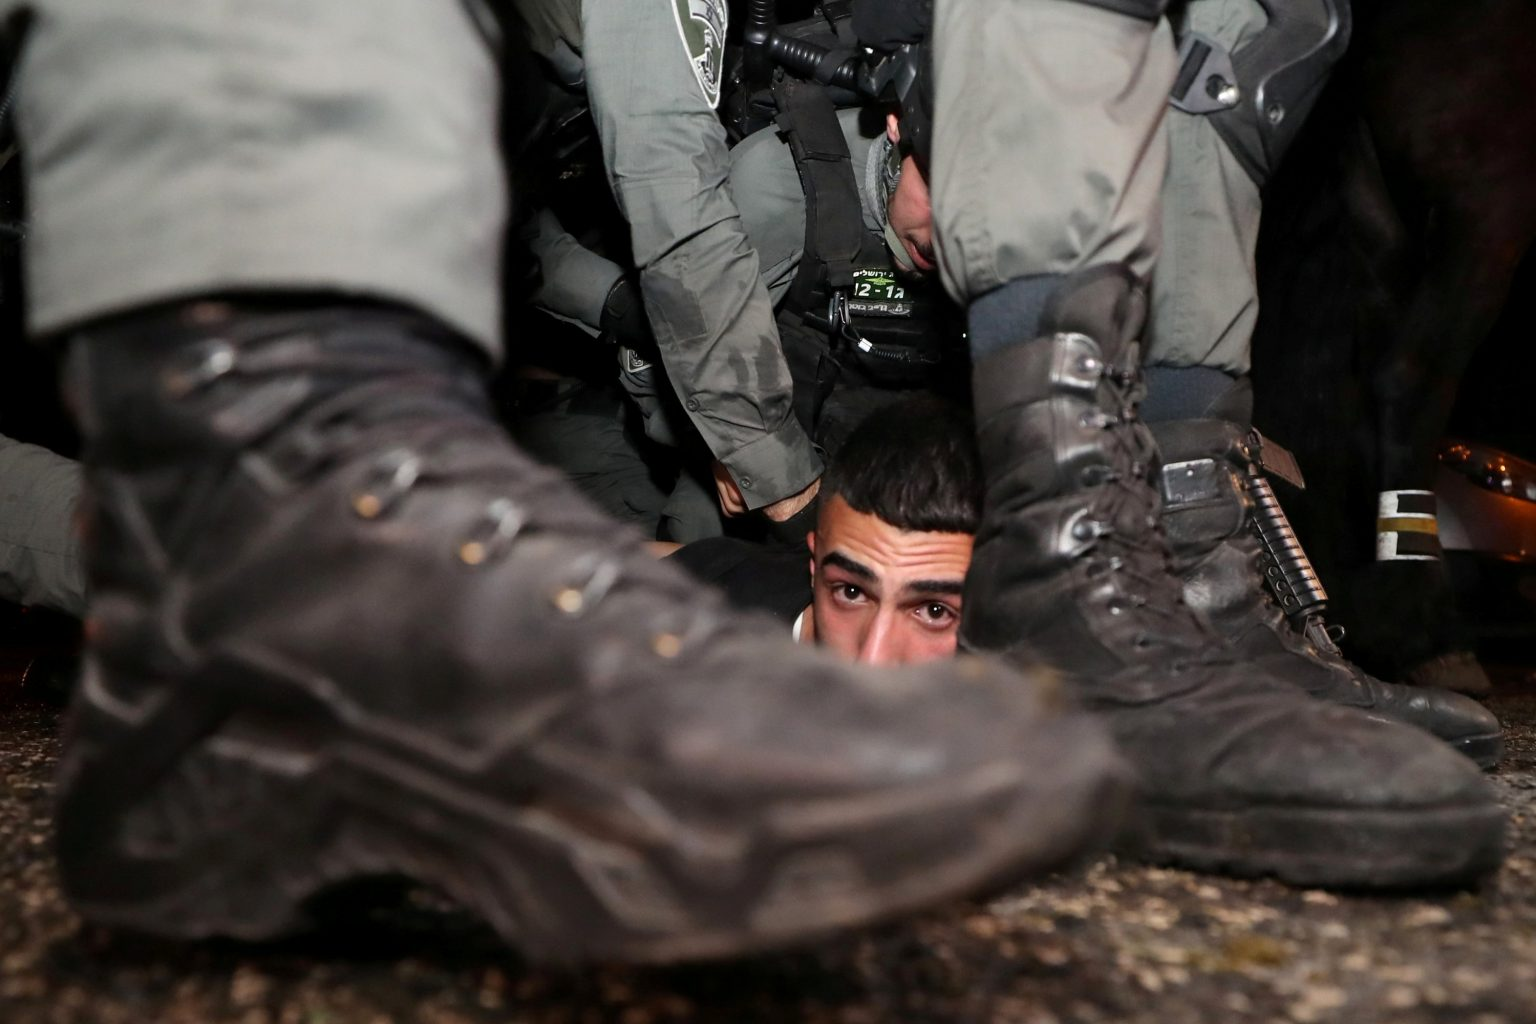 Israeli police arresting a Palestinian protestor amidst heated clashes over property rights between Palestinians and Israeli settlers in Sheikh Jarrah in East Jerusalem – 5 May 2021 (Reuters)